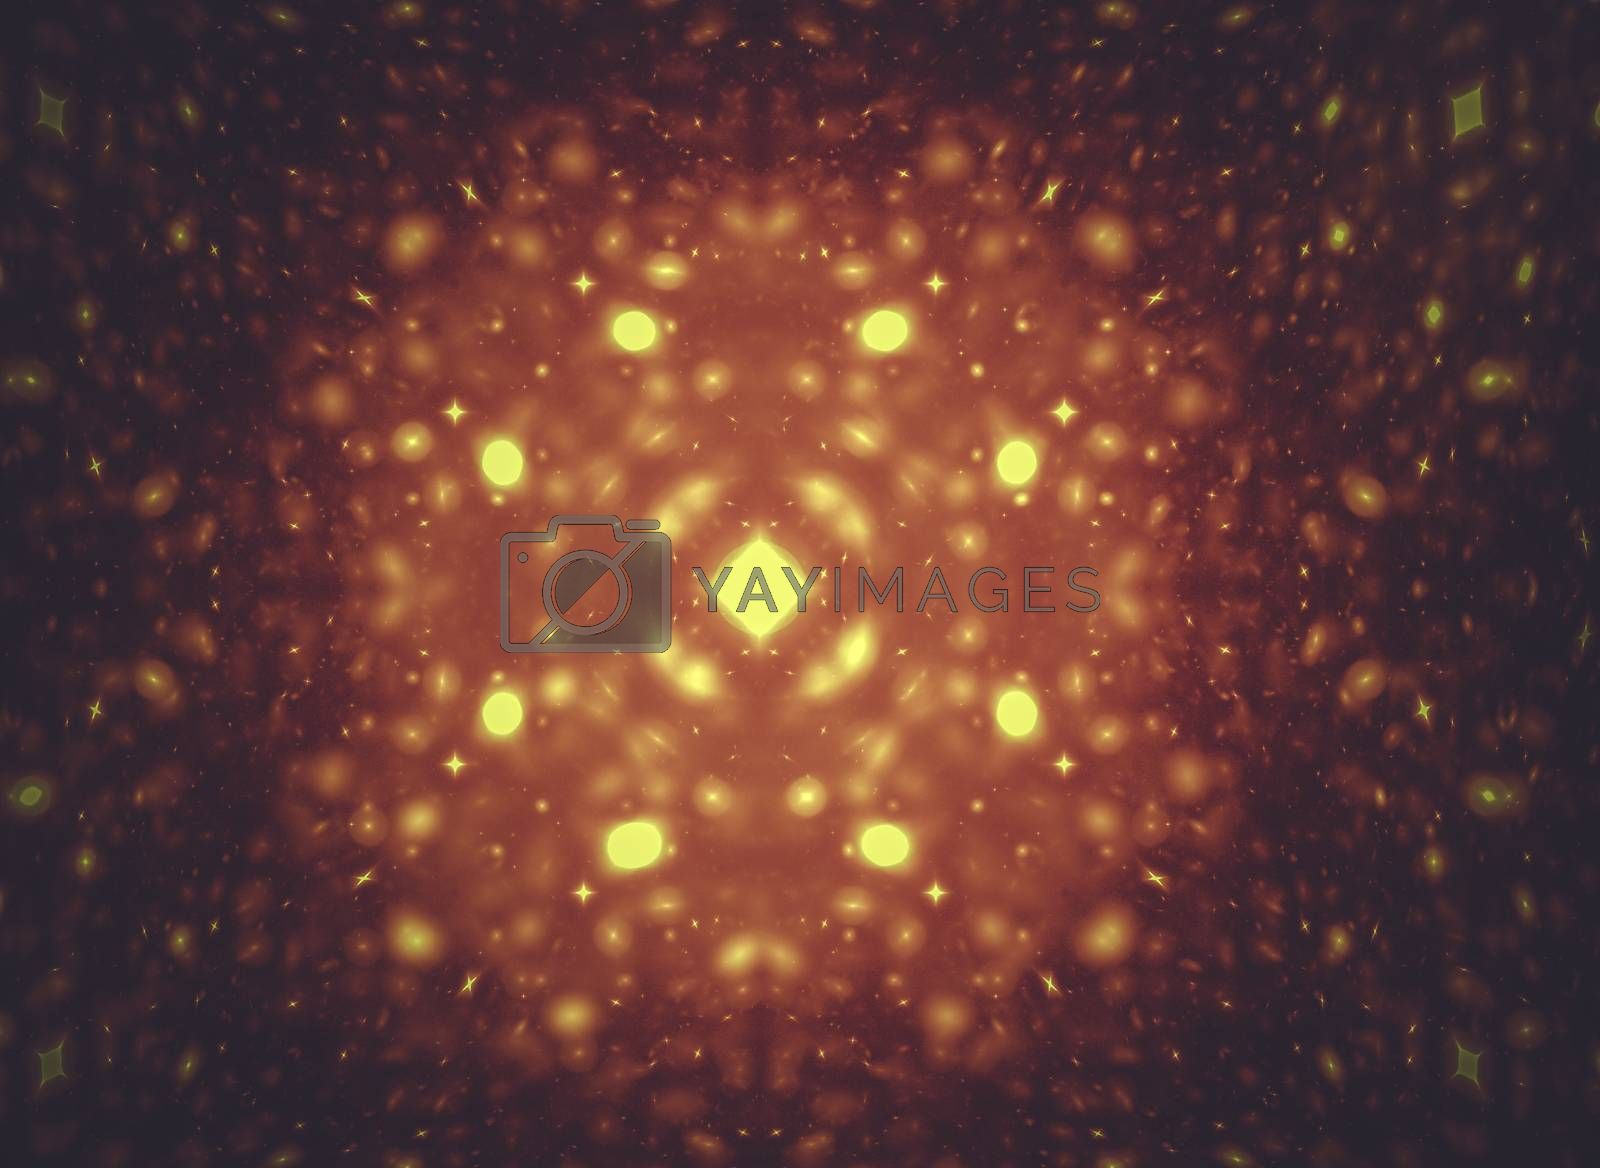 Star. Creative design background, fractal styles with color design of dreamy forms imagination and fantasy